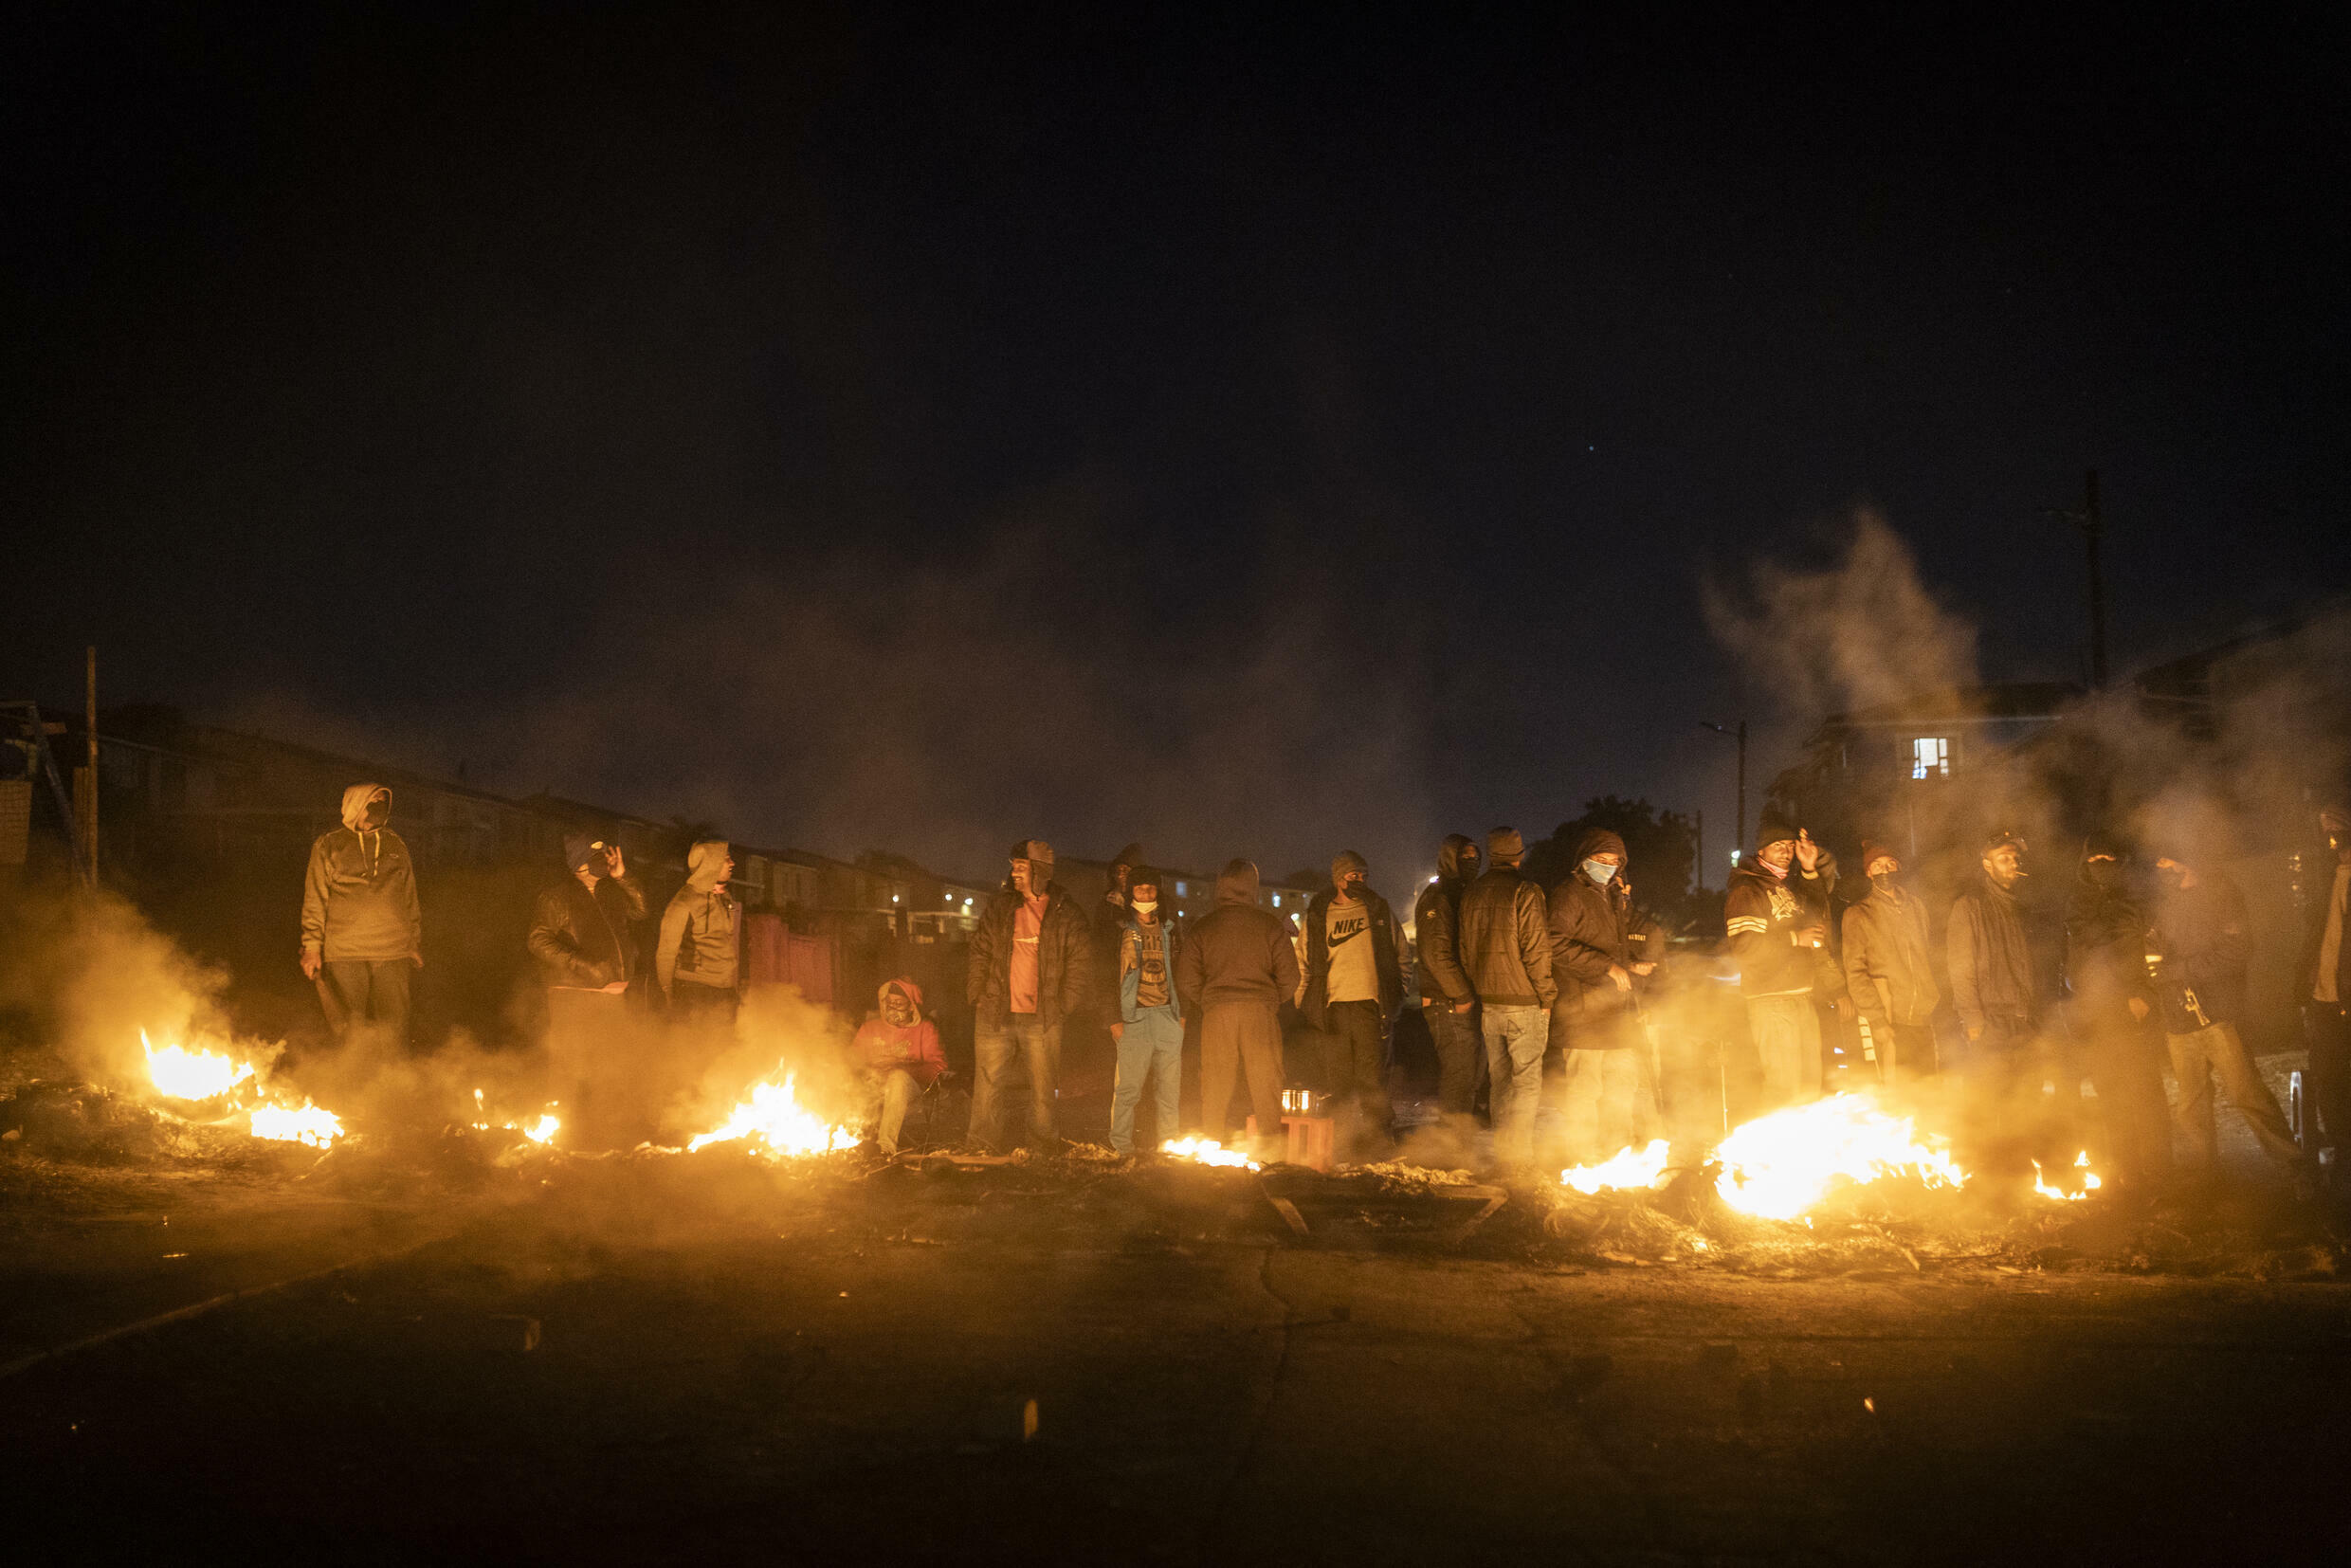 The unrest, the worst in post-apartheid South Africa, erupted a week ago